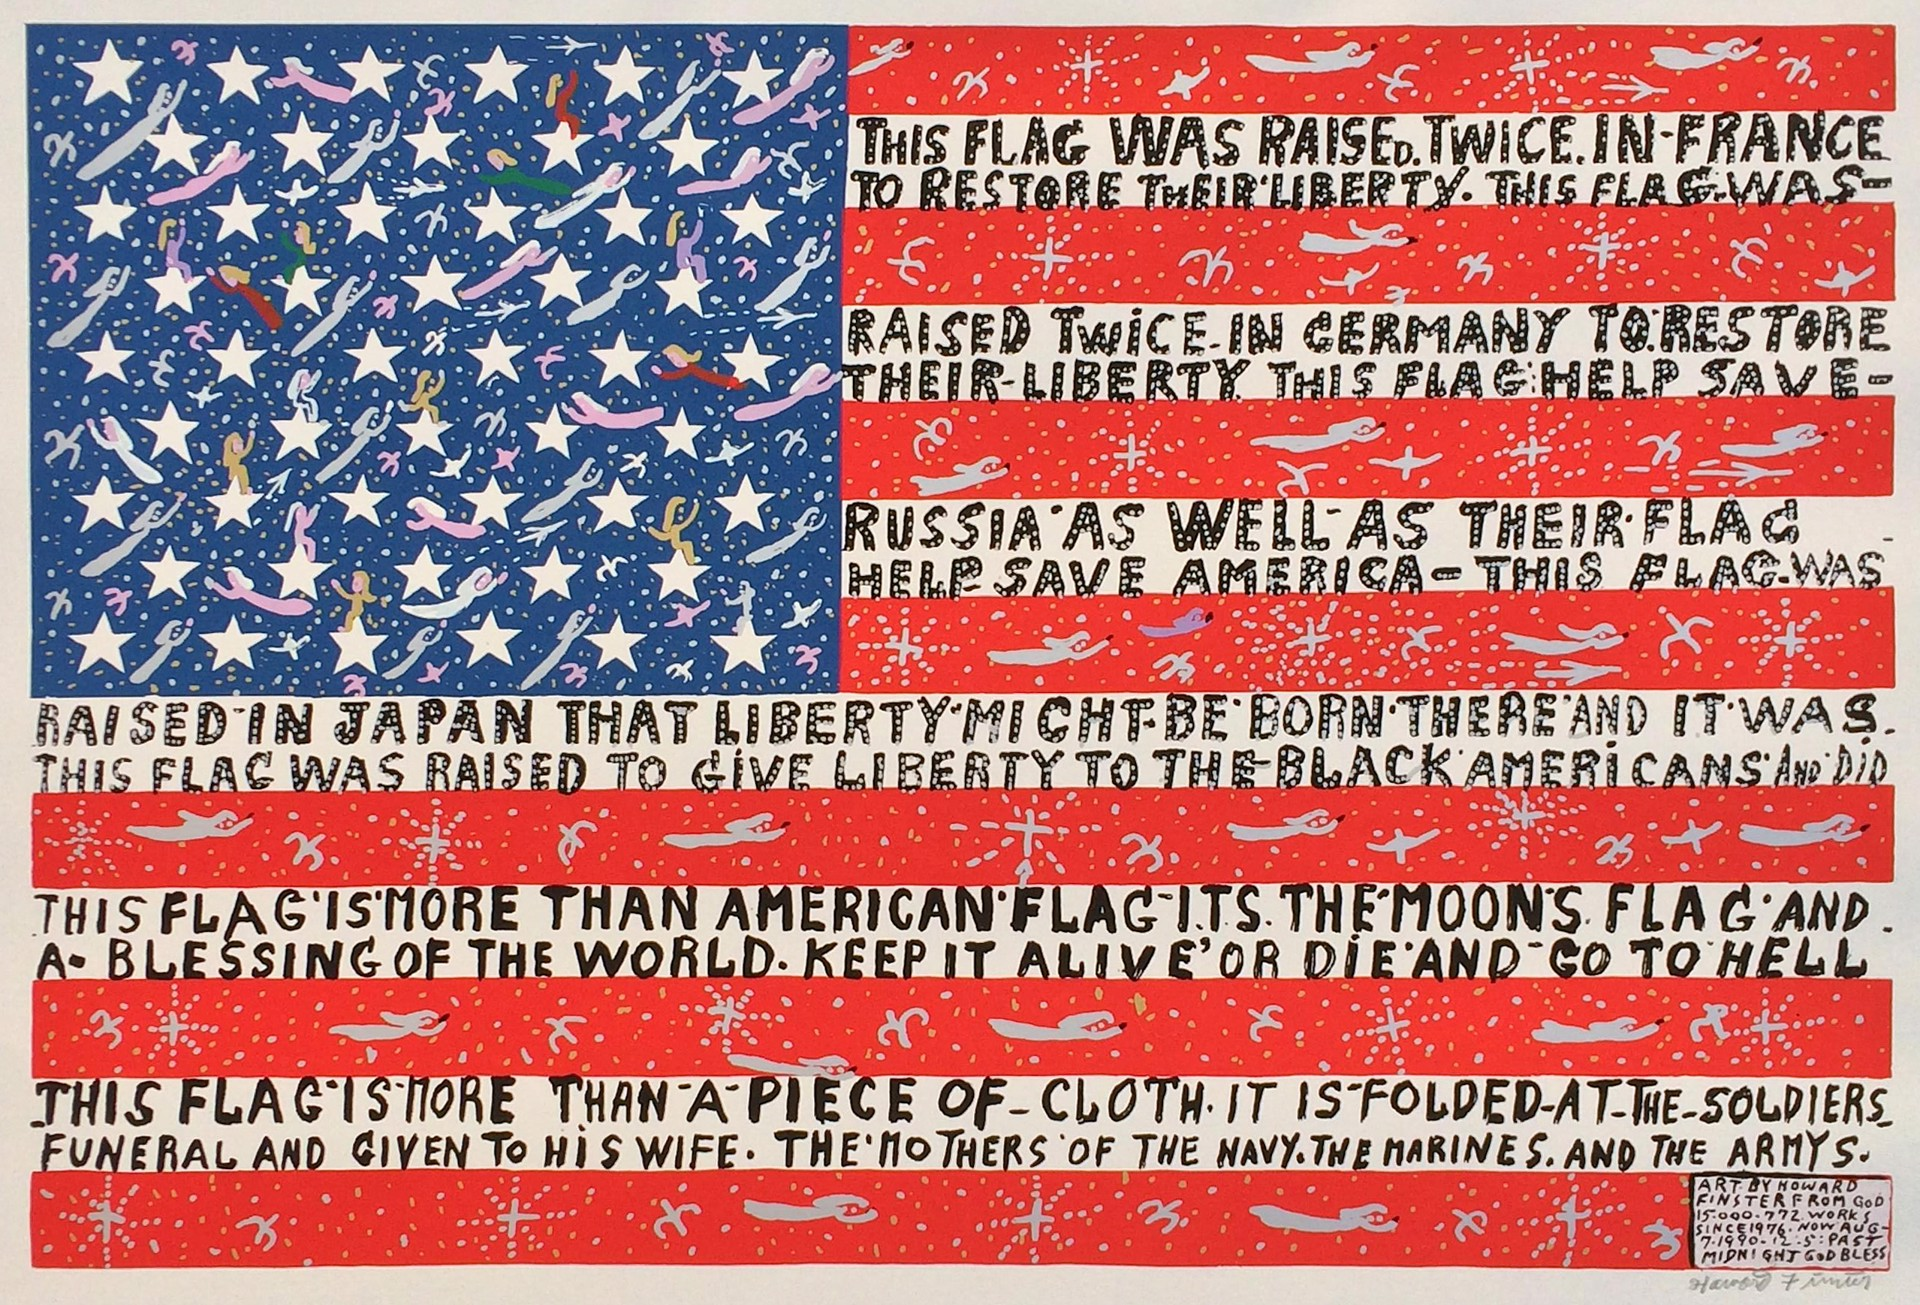 More Than a Piece of Cloth Flag by Howard Finster